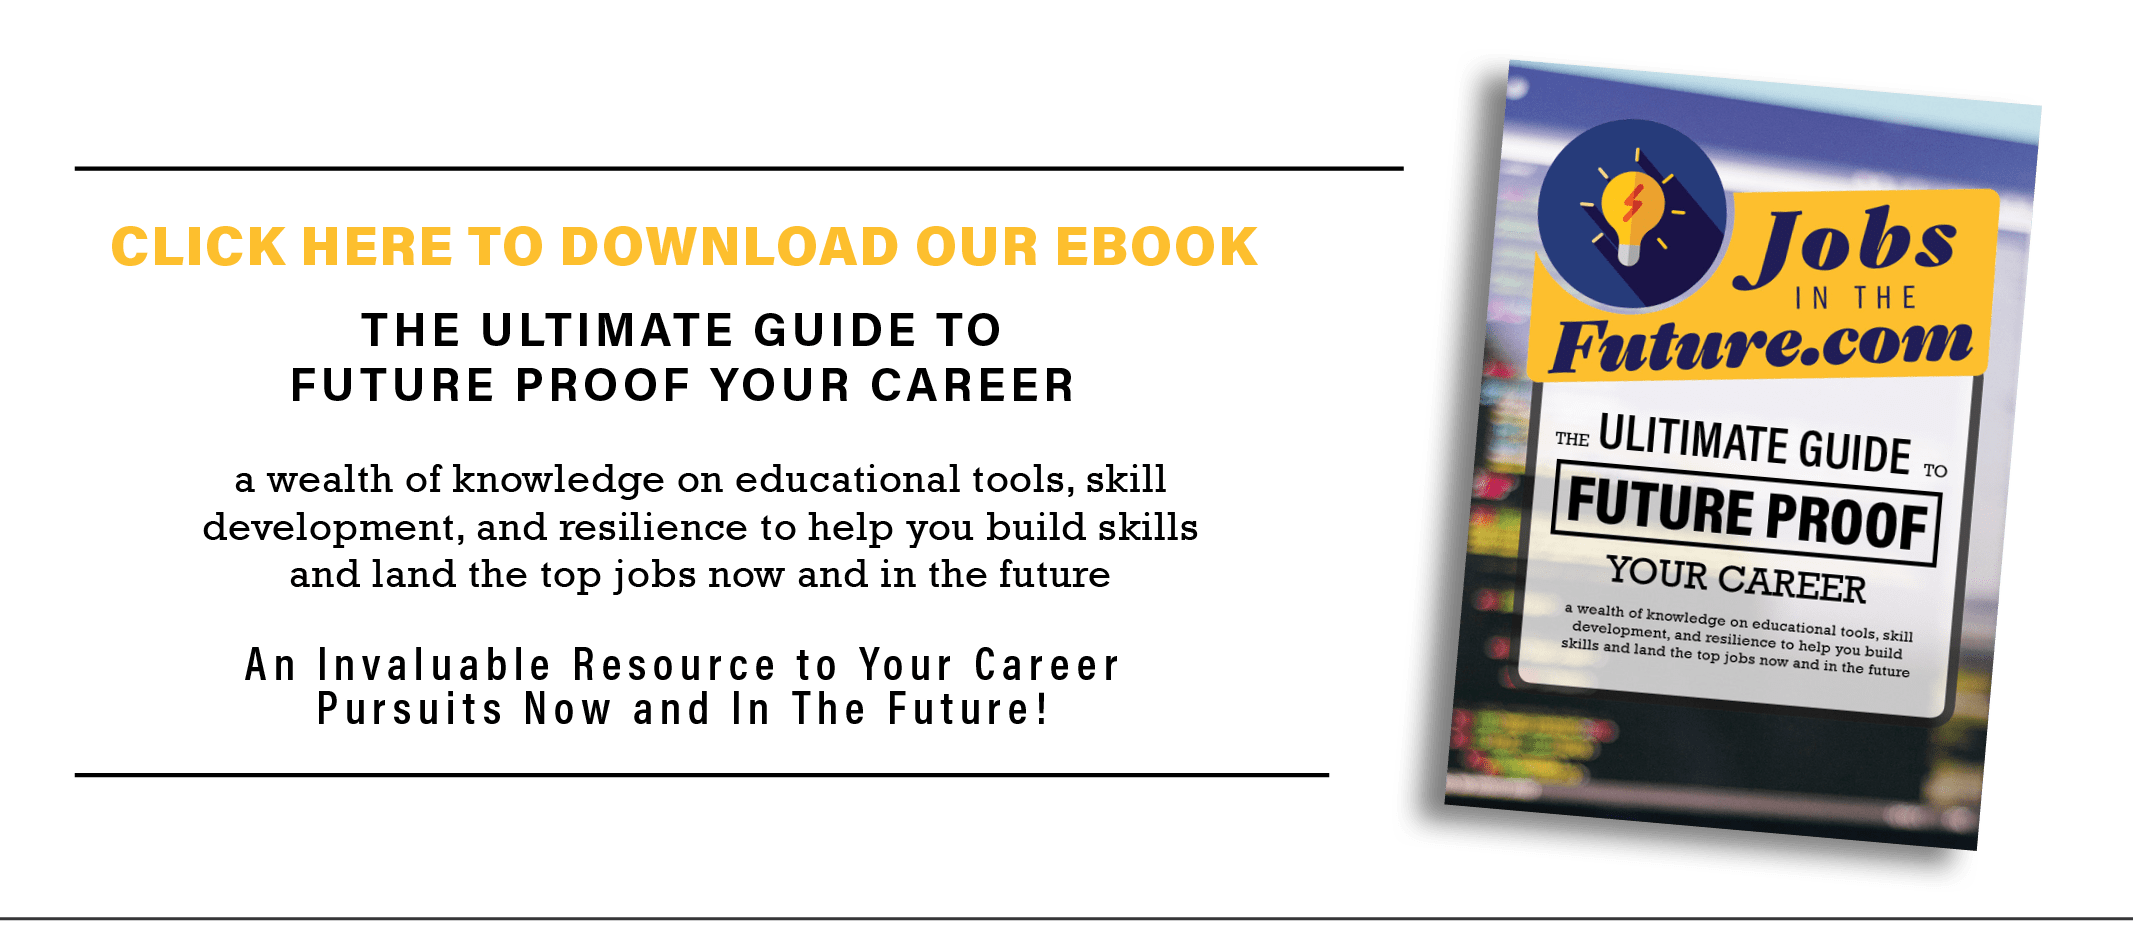 learn how to future proof your career with this ebook!